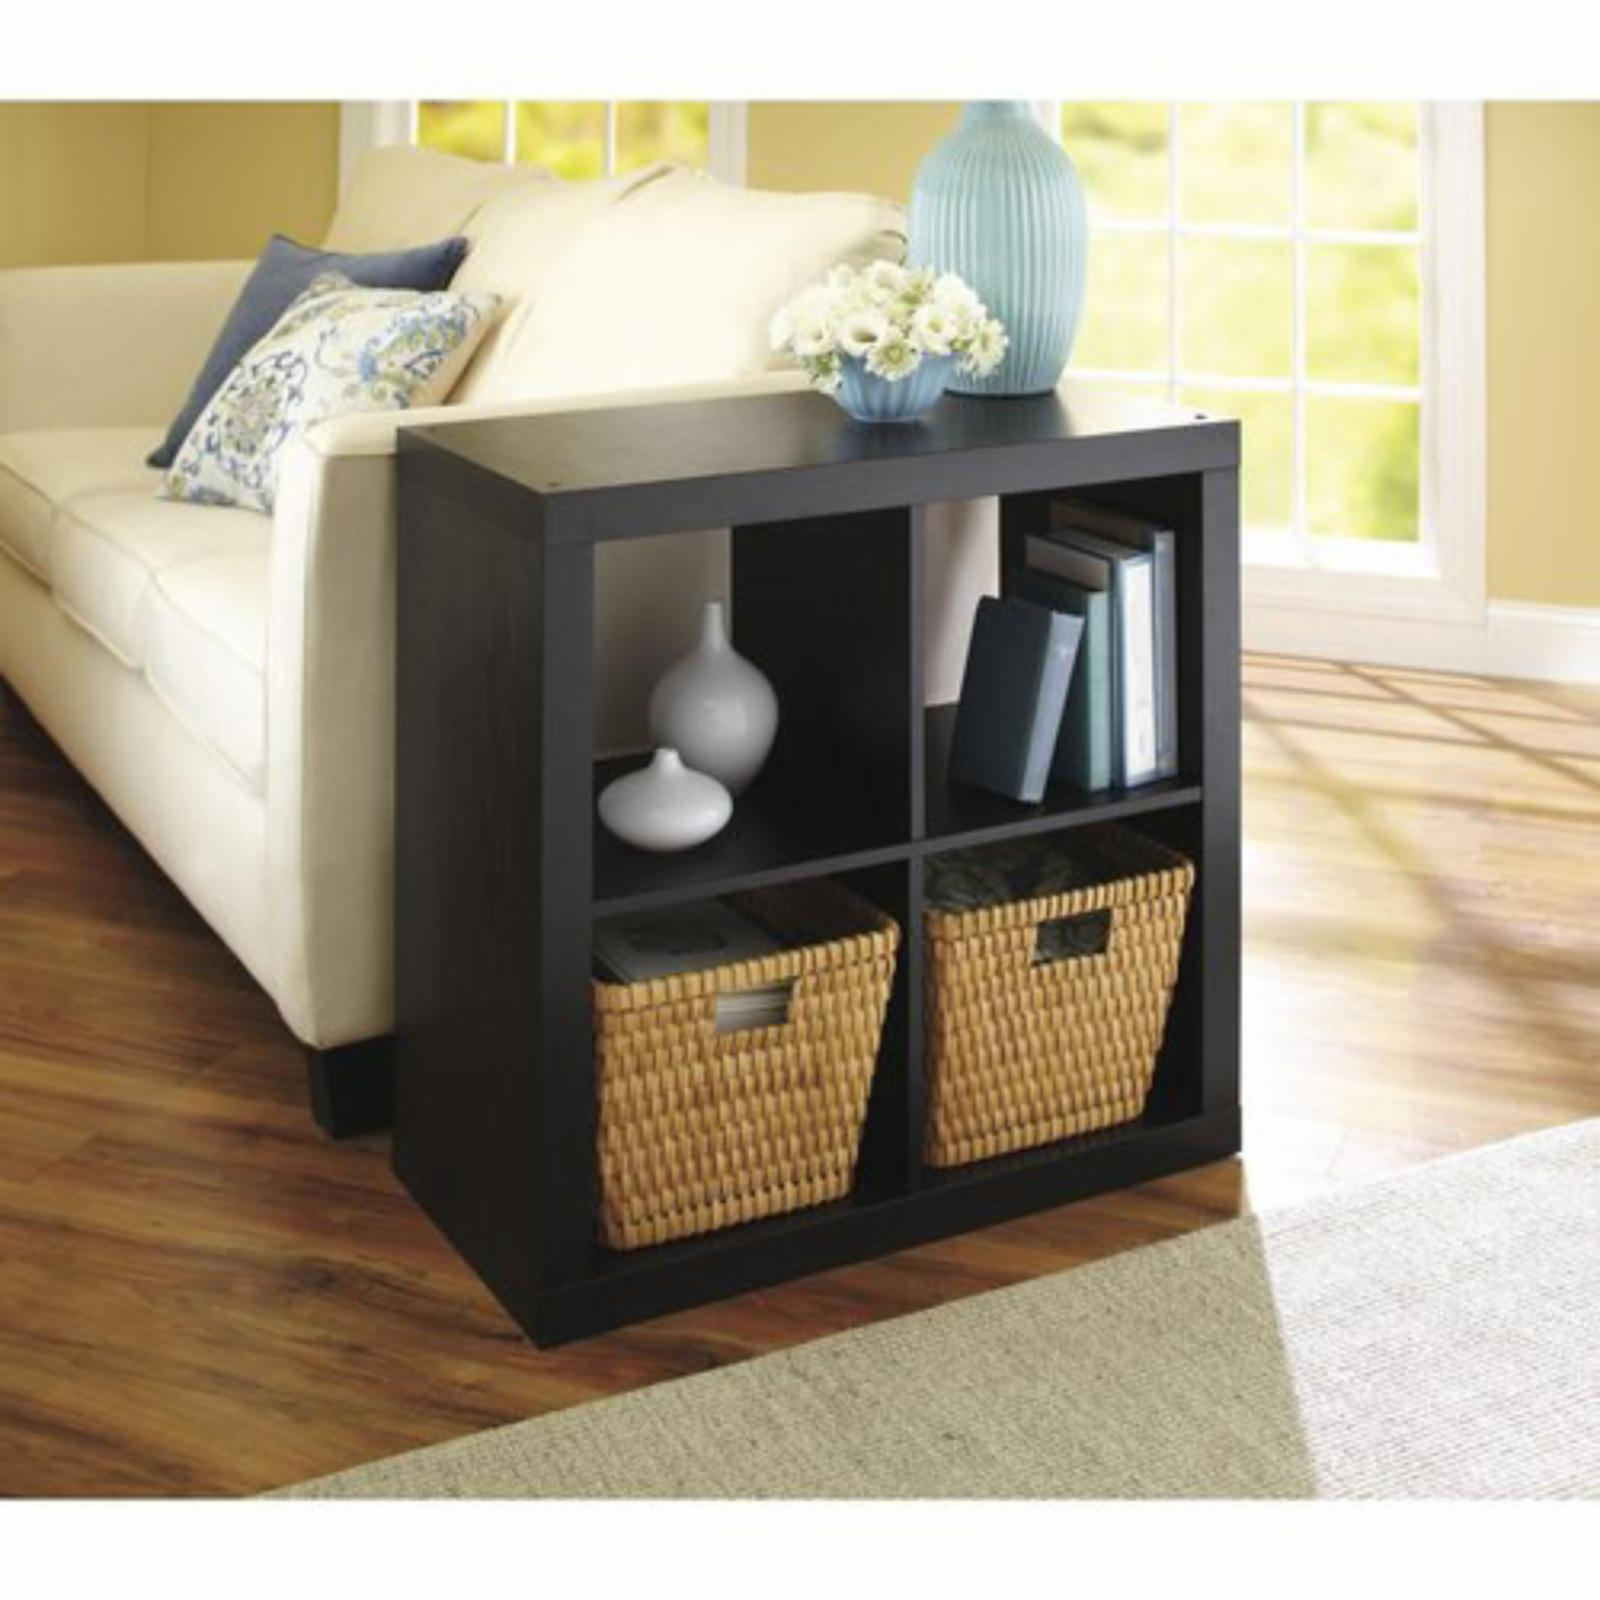 BETTER HOMES AND GARDENS Square 4 Cube Organizer - 404D9D...